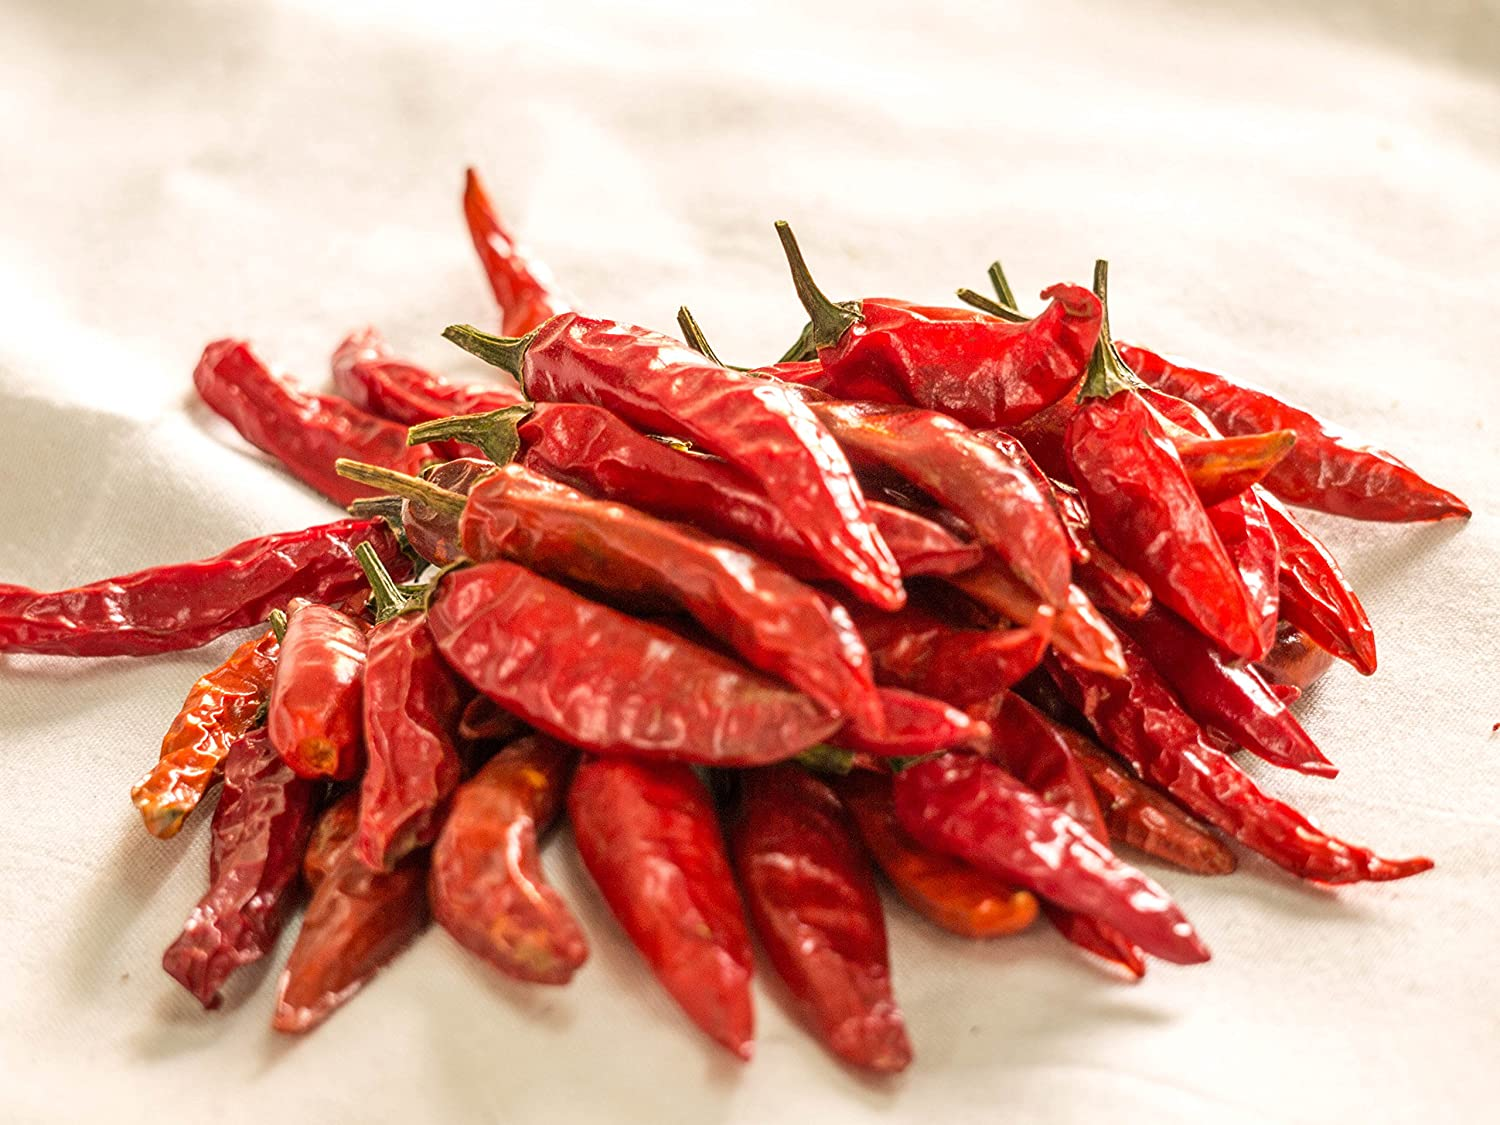 Nobility Dry Chillies 100g / 3.5oz - Dried Red Chili Pepper - Indian Extra Hot Red Chilli - [A+]